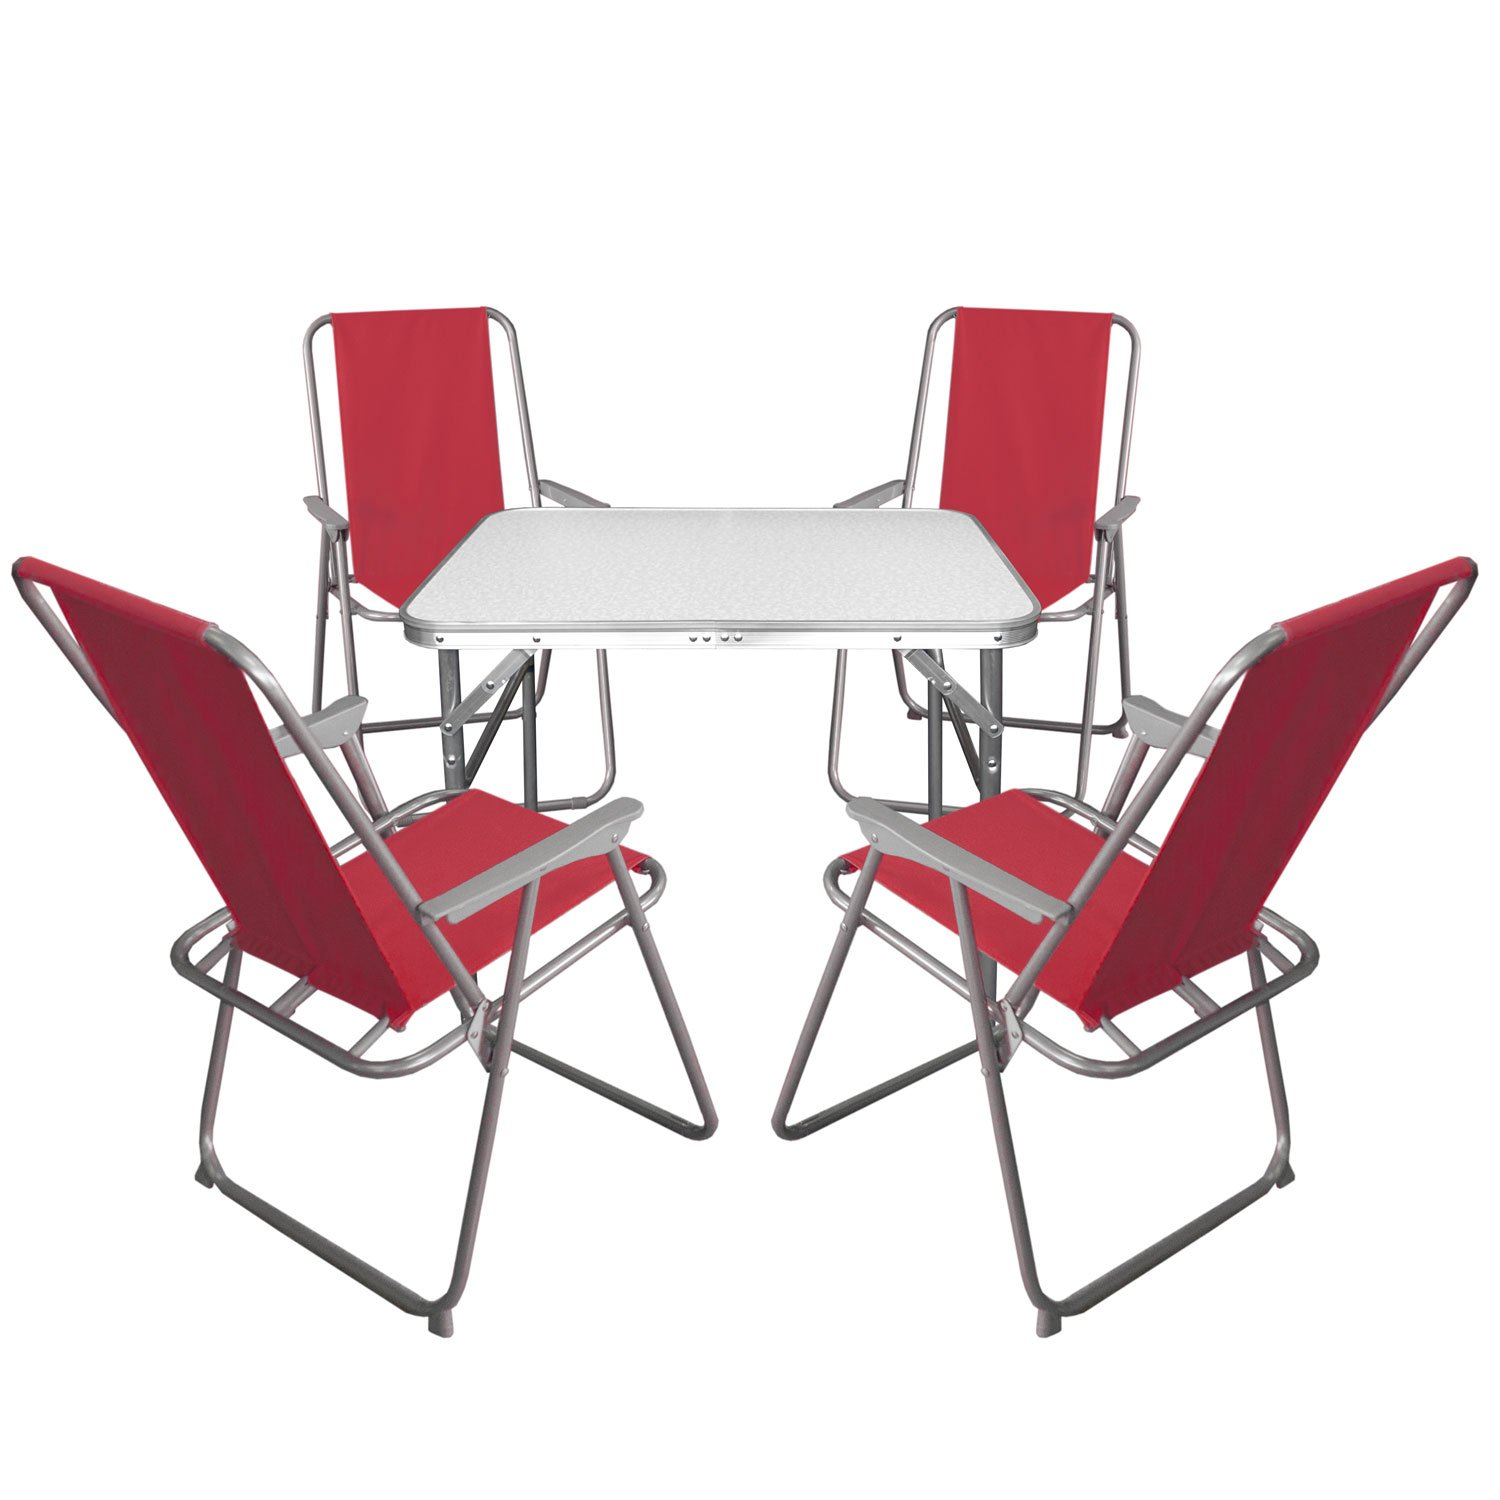 5tlg campingm bel set klapptisch aluminium 55x75cm 4x klappstuhl rot campingstuhl. Black Bedroom Furniture Sets. Home Design Ideas